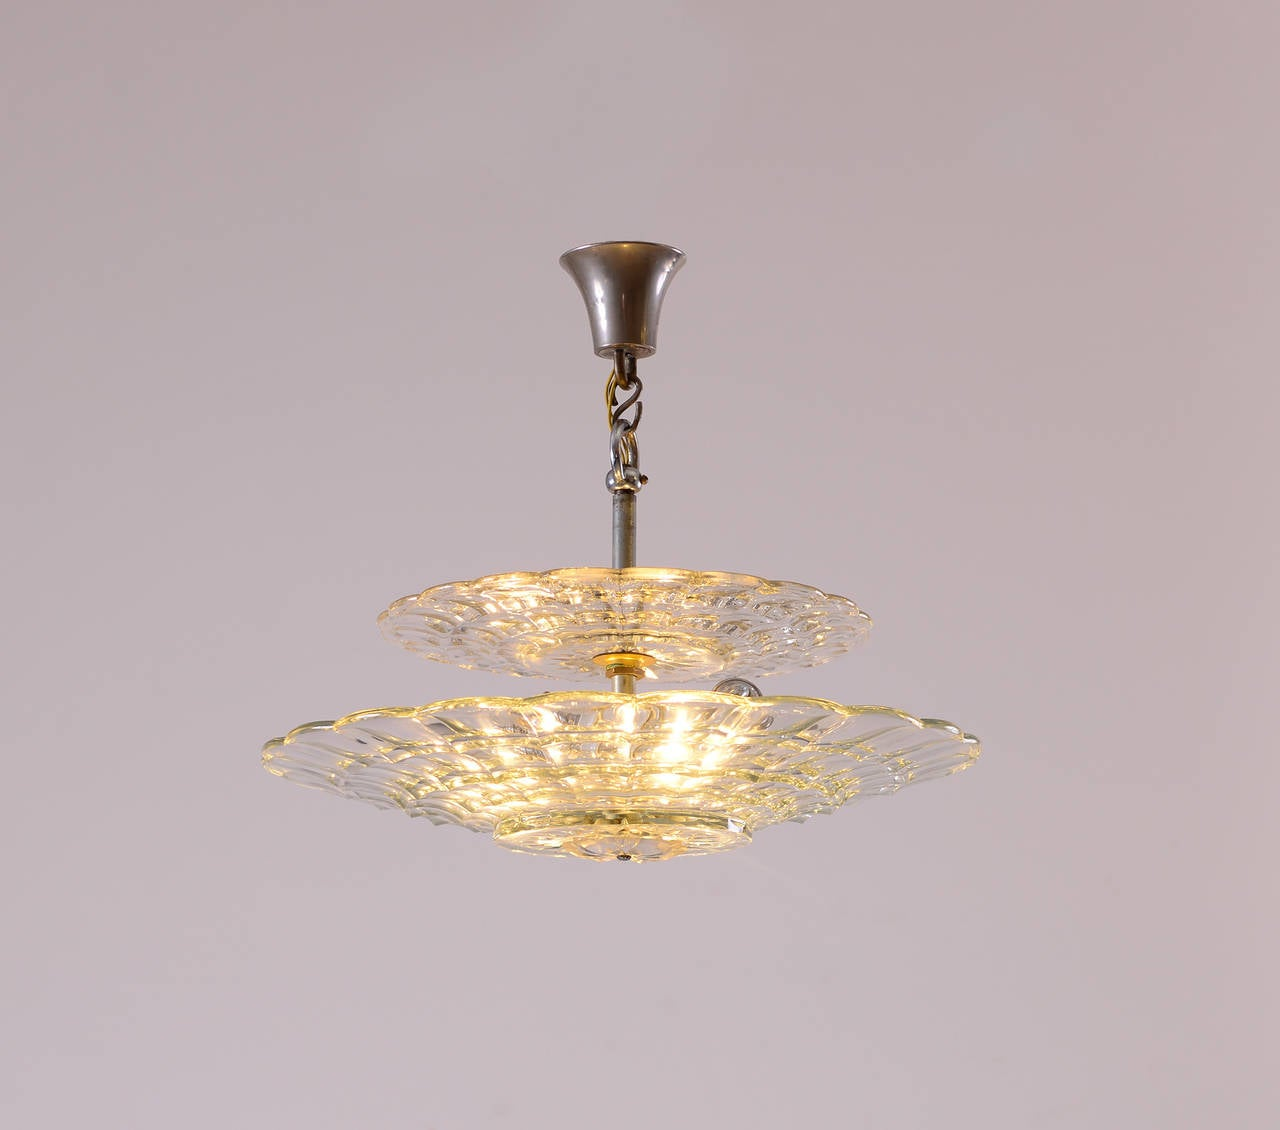 Unique lobmeyr crystal glass chandelier at 1stdibs - Unique crystal chandeliers ...